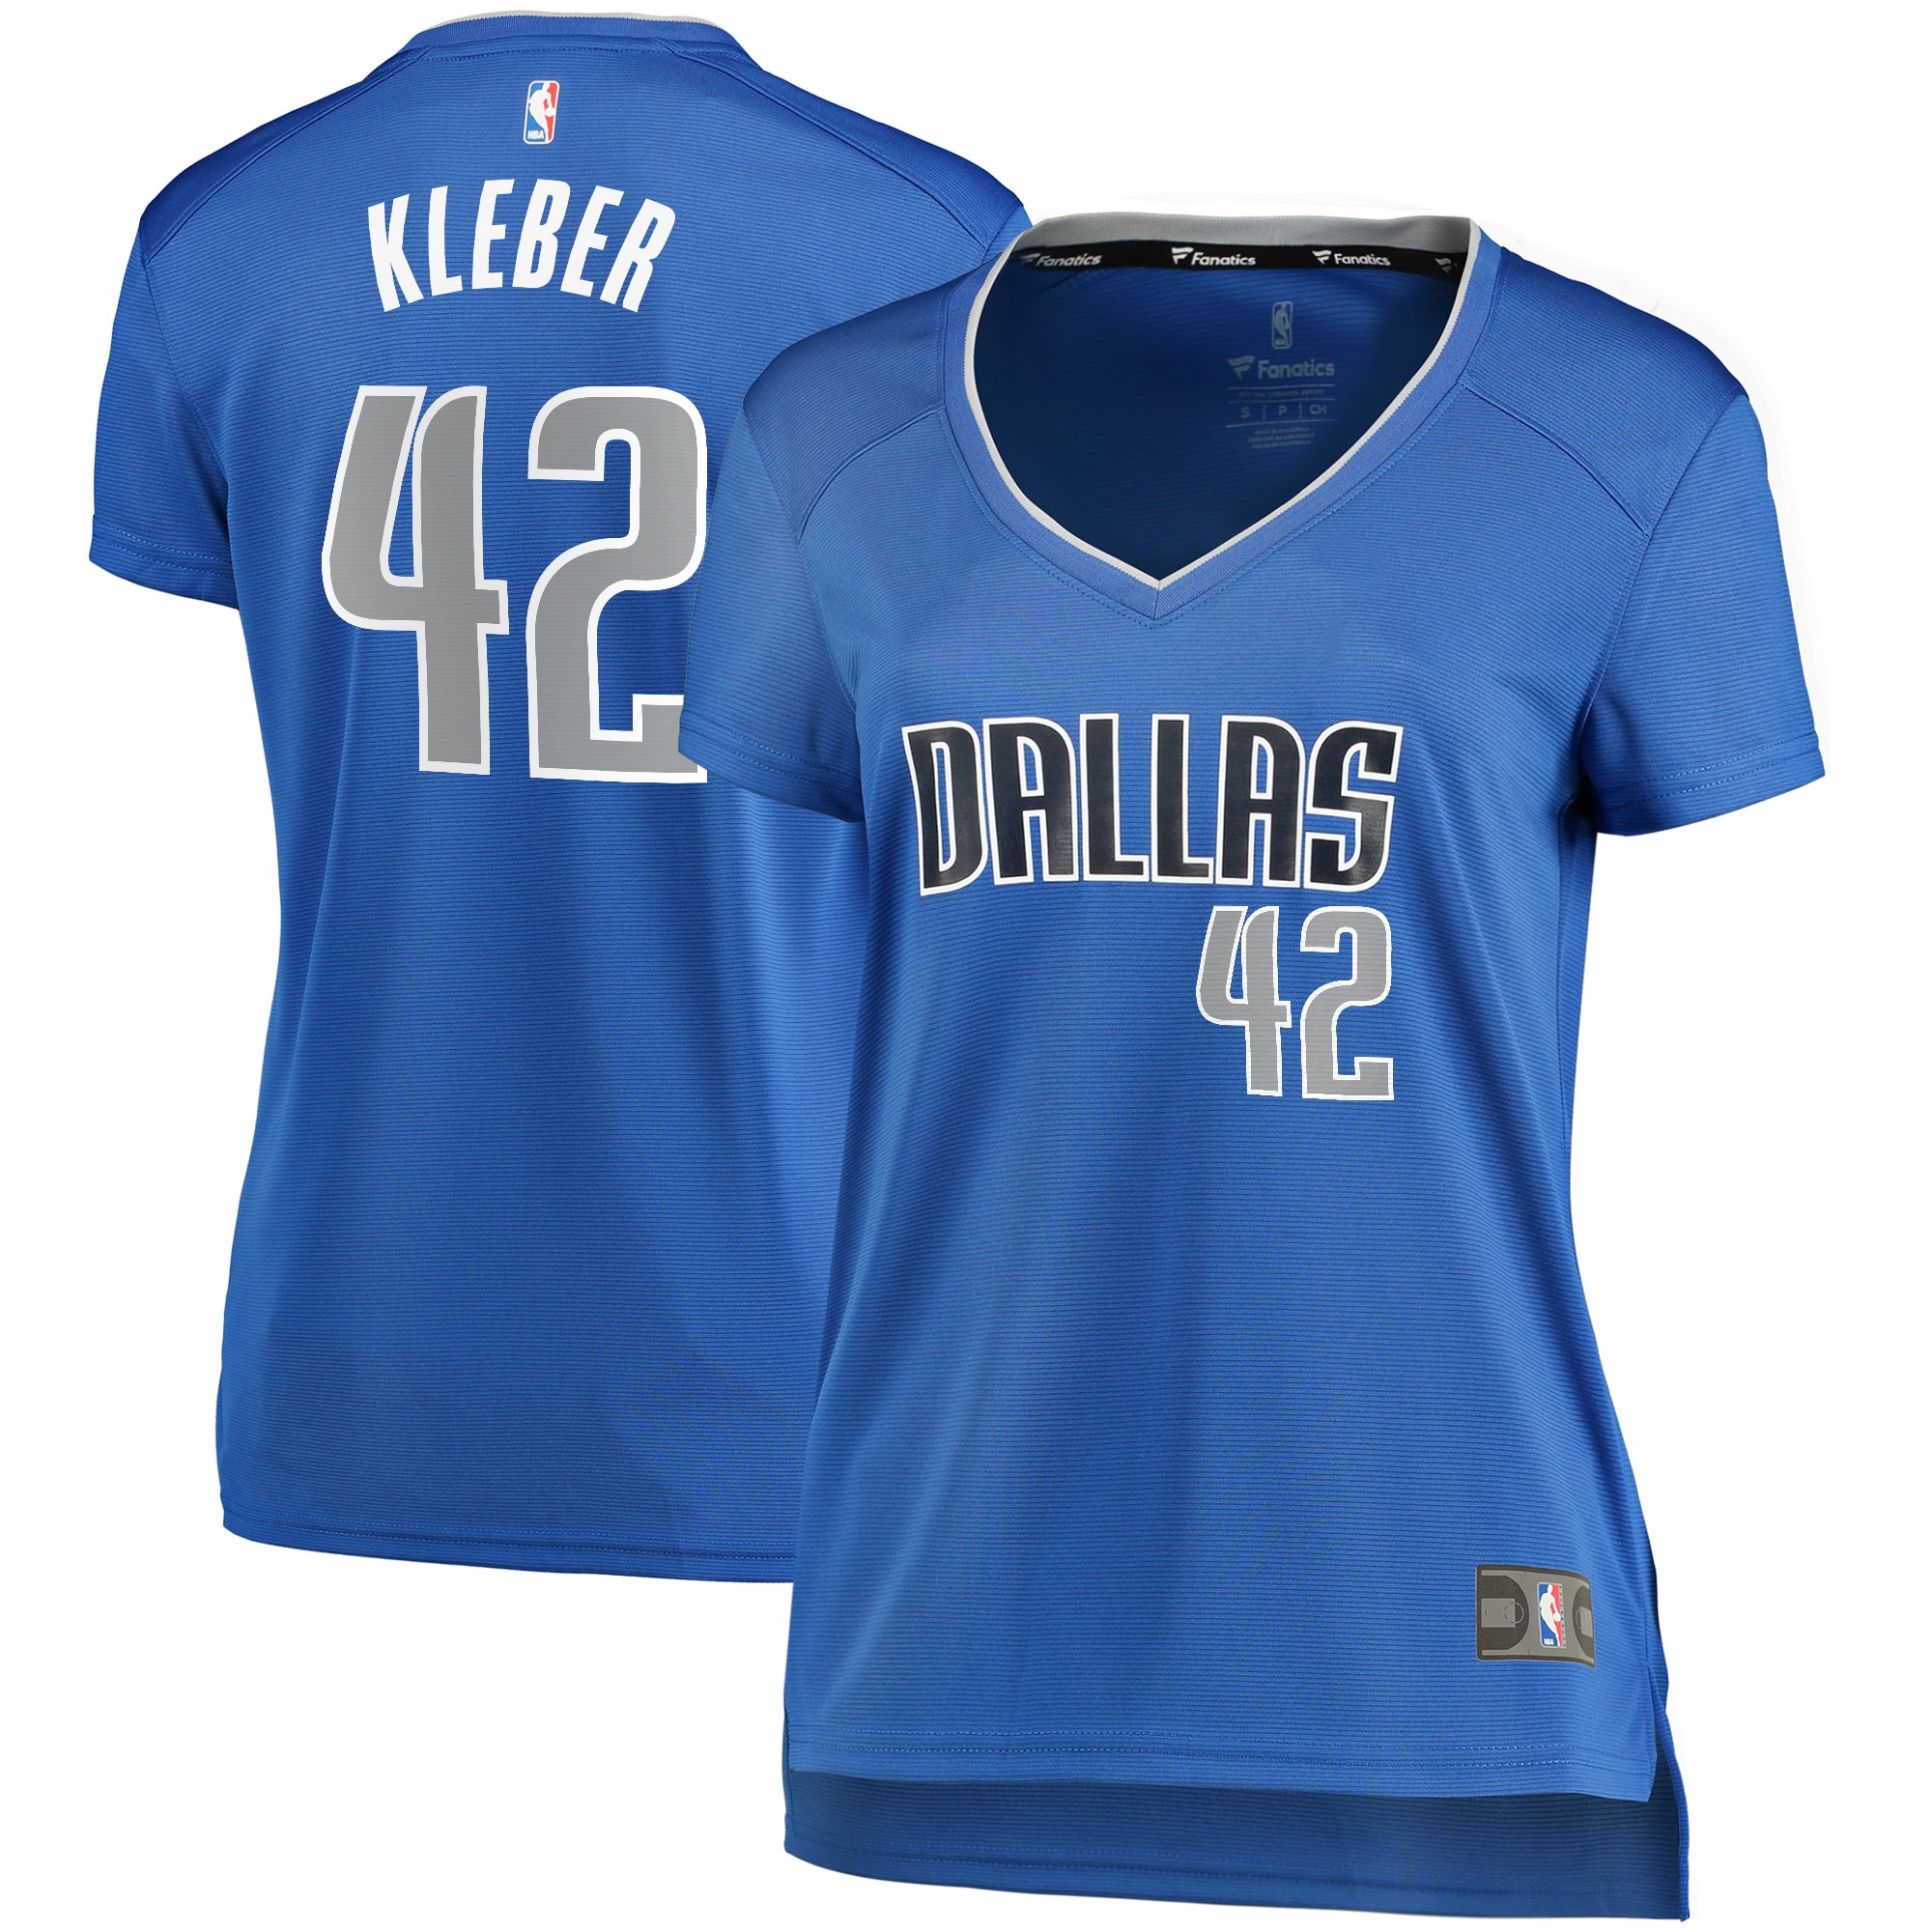 Maxi Kleber Dallas Mavericks Fanatics Branded Women's Fast Break Player Replica Jersey - Icon Edition - Blue